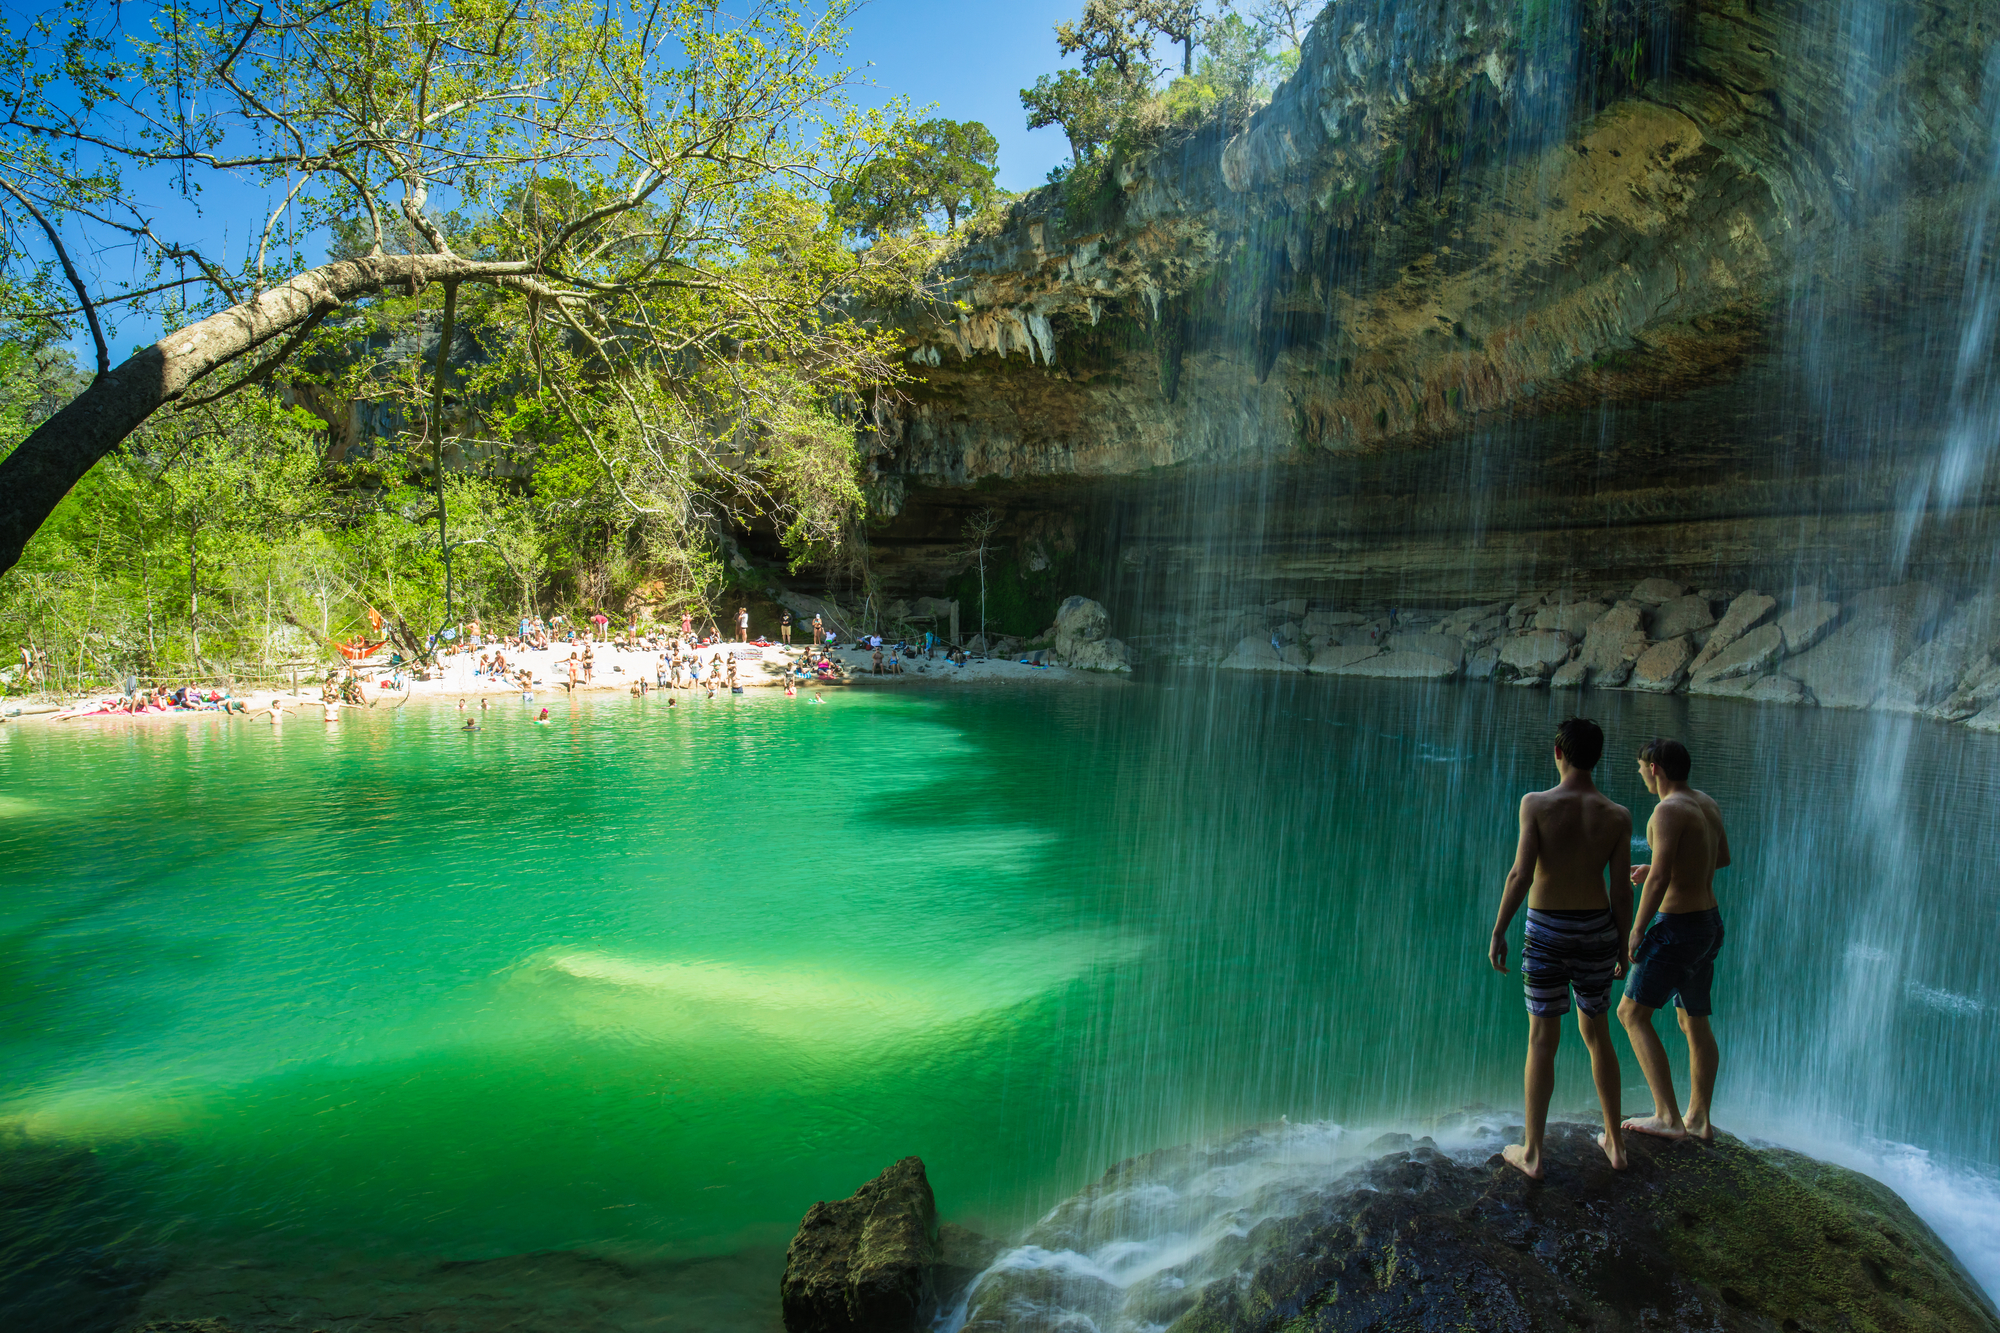 Top 5 Central Texas Swimming Holes To Beat The Heat This